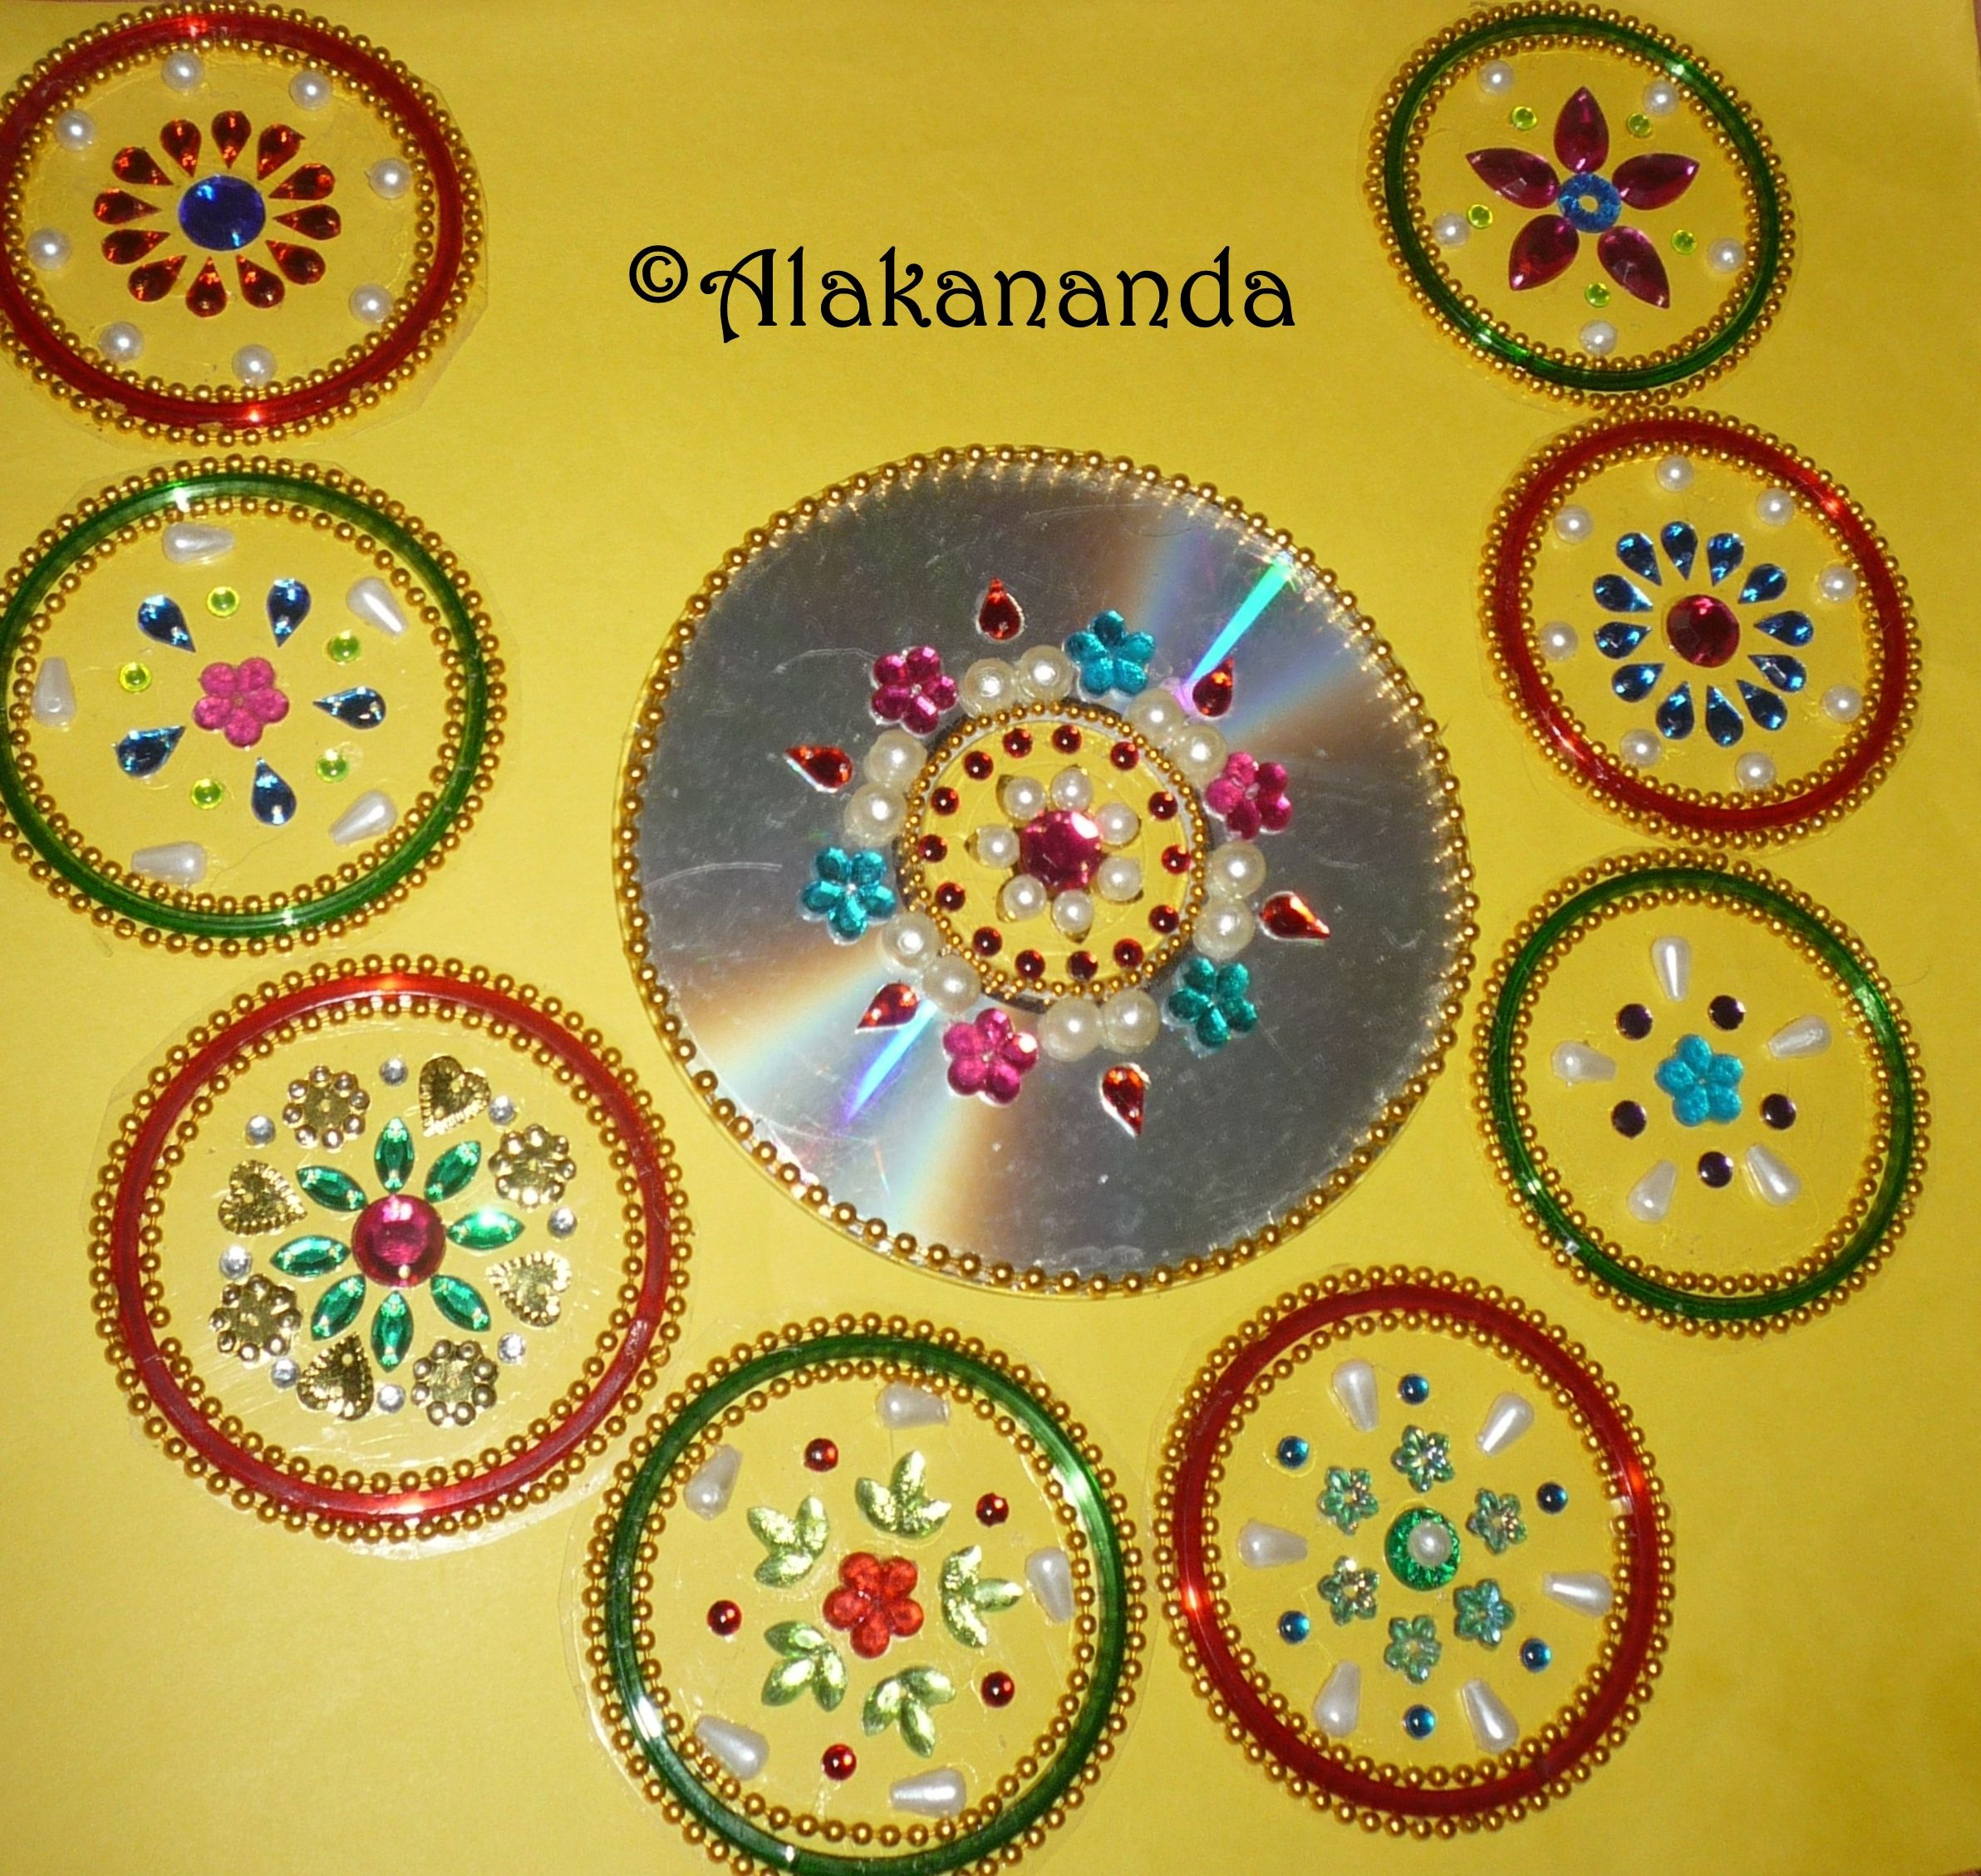 Diwali Decoration Ideas And Crafts Kundan Rangoli Using Bangles Rangoli Pinterest Craft